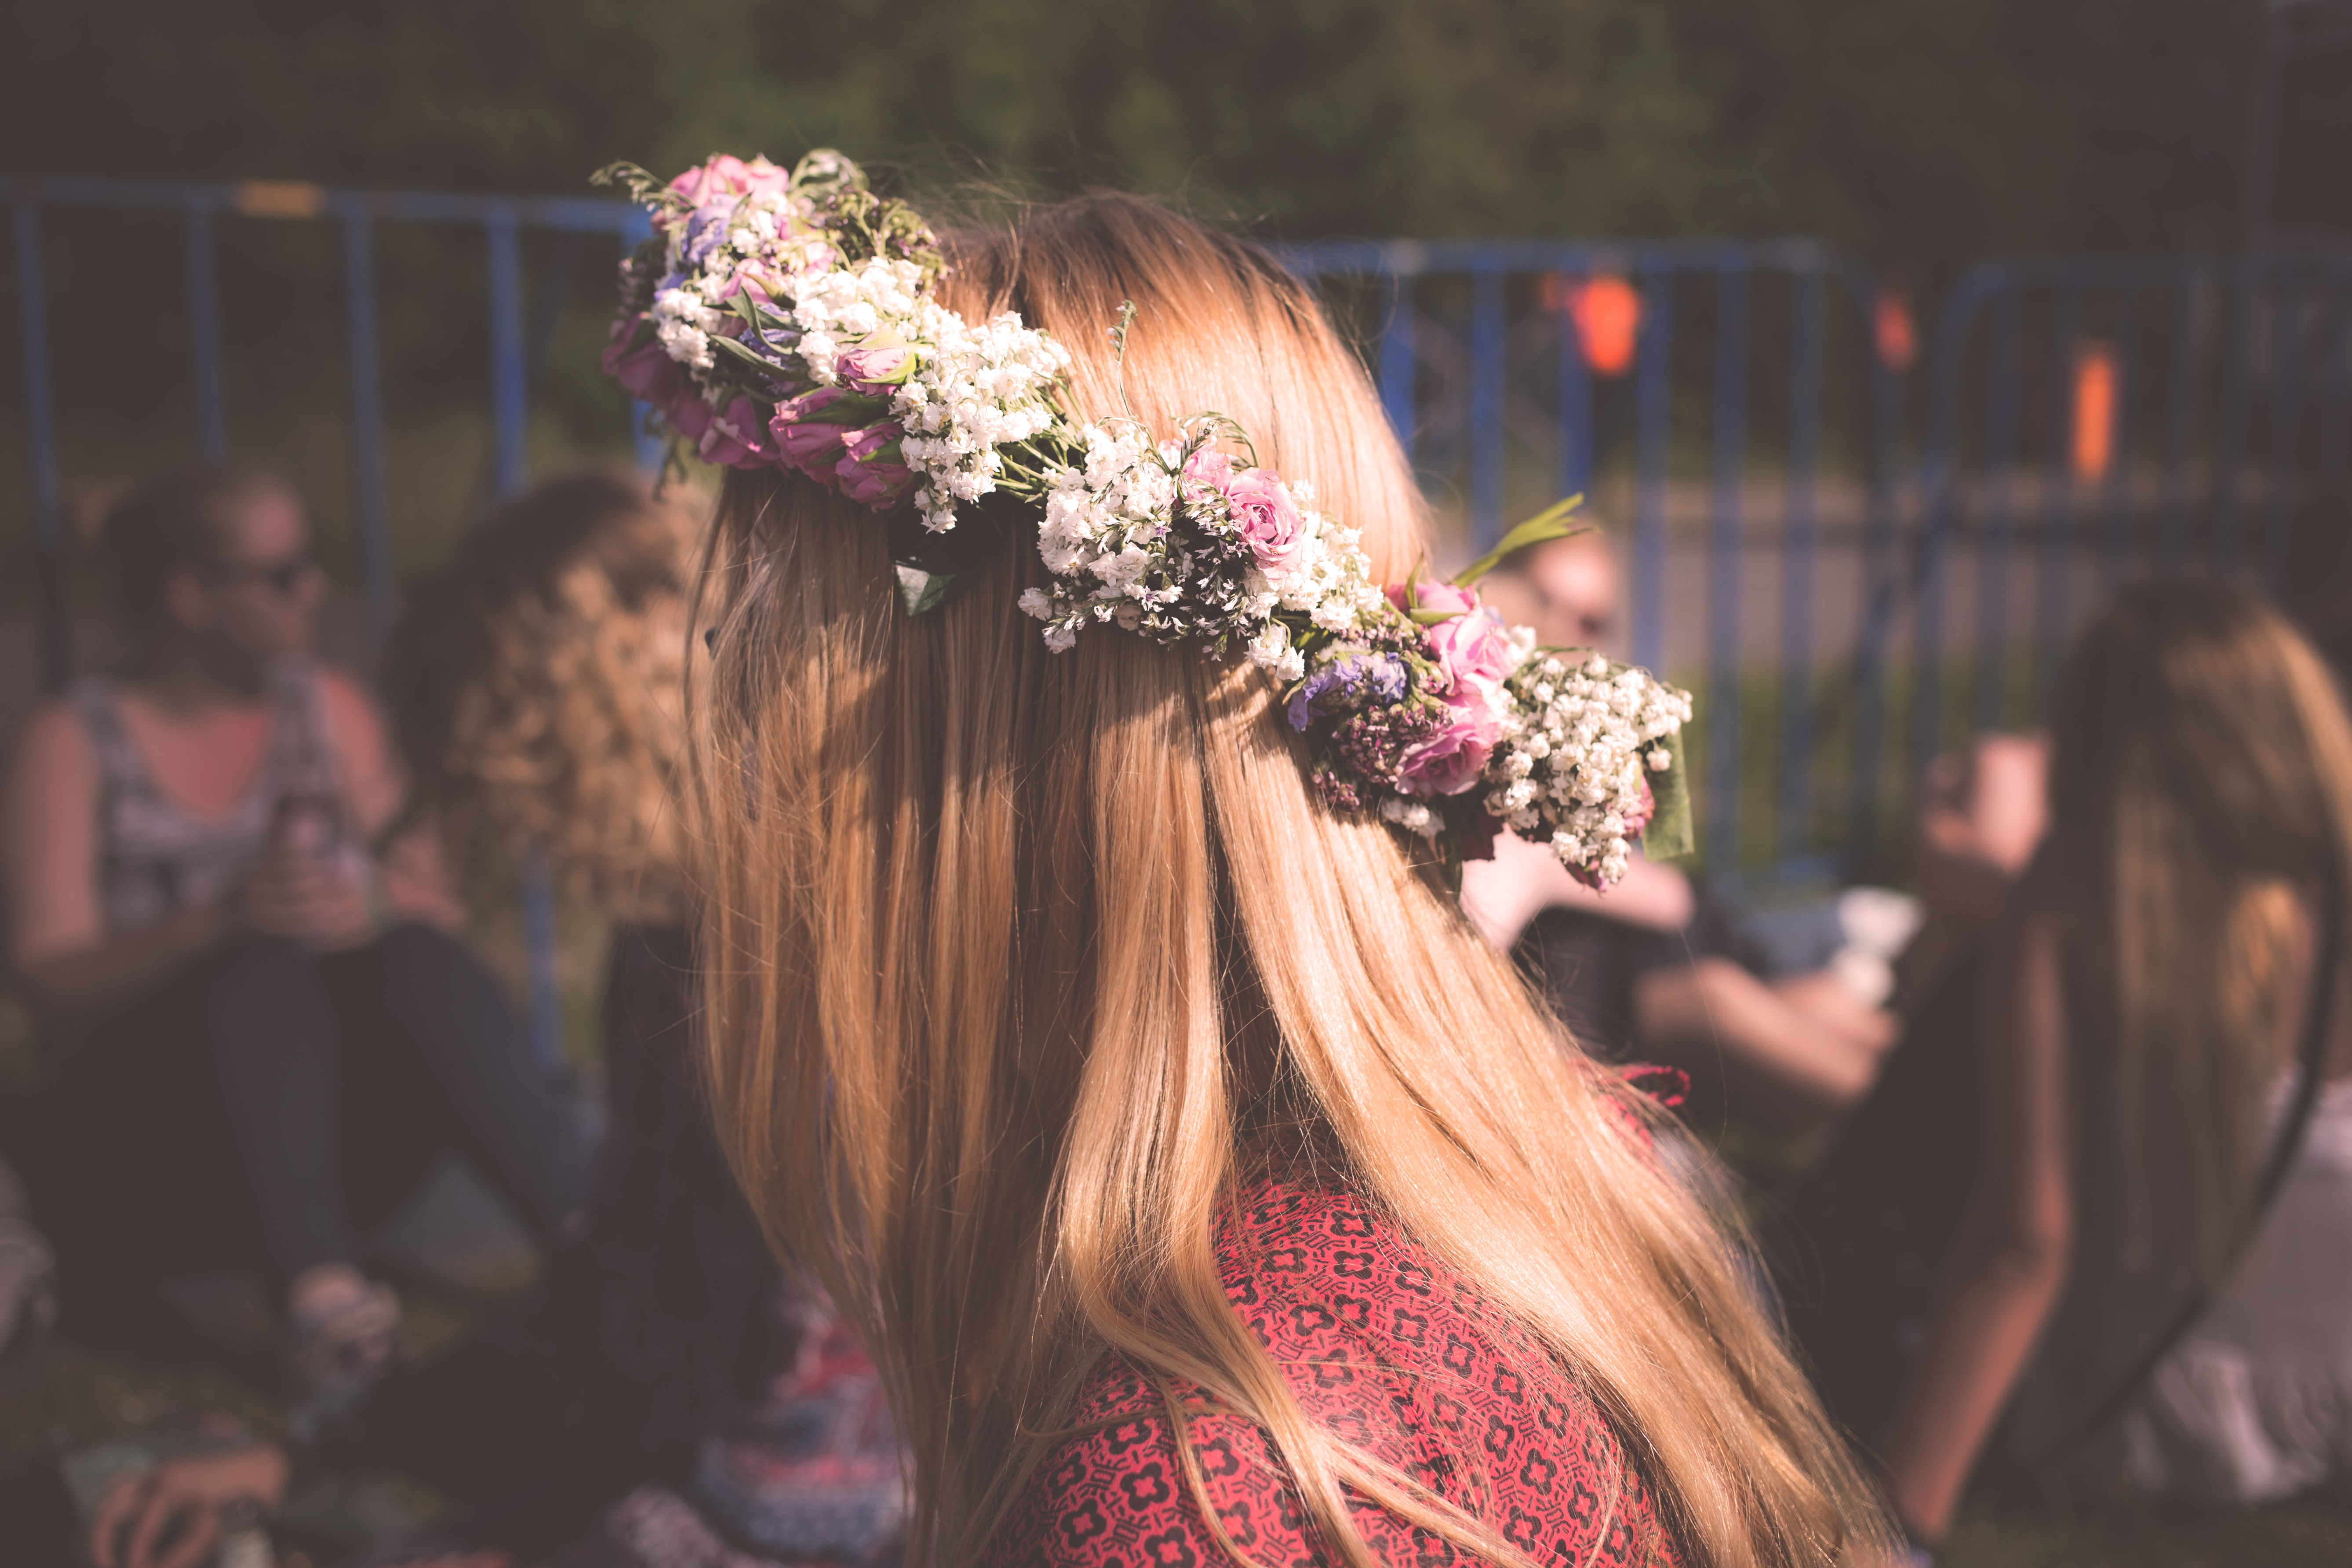 A blonde woman in a headband made of tiny multi-colored flowers